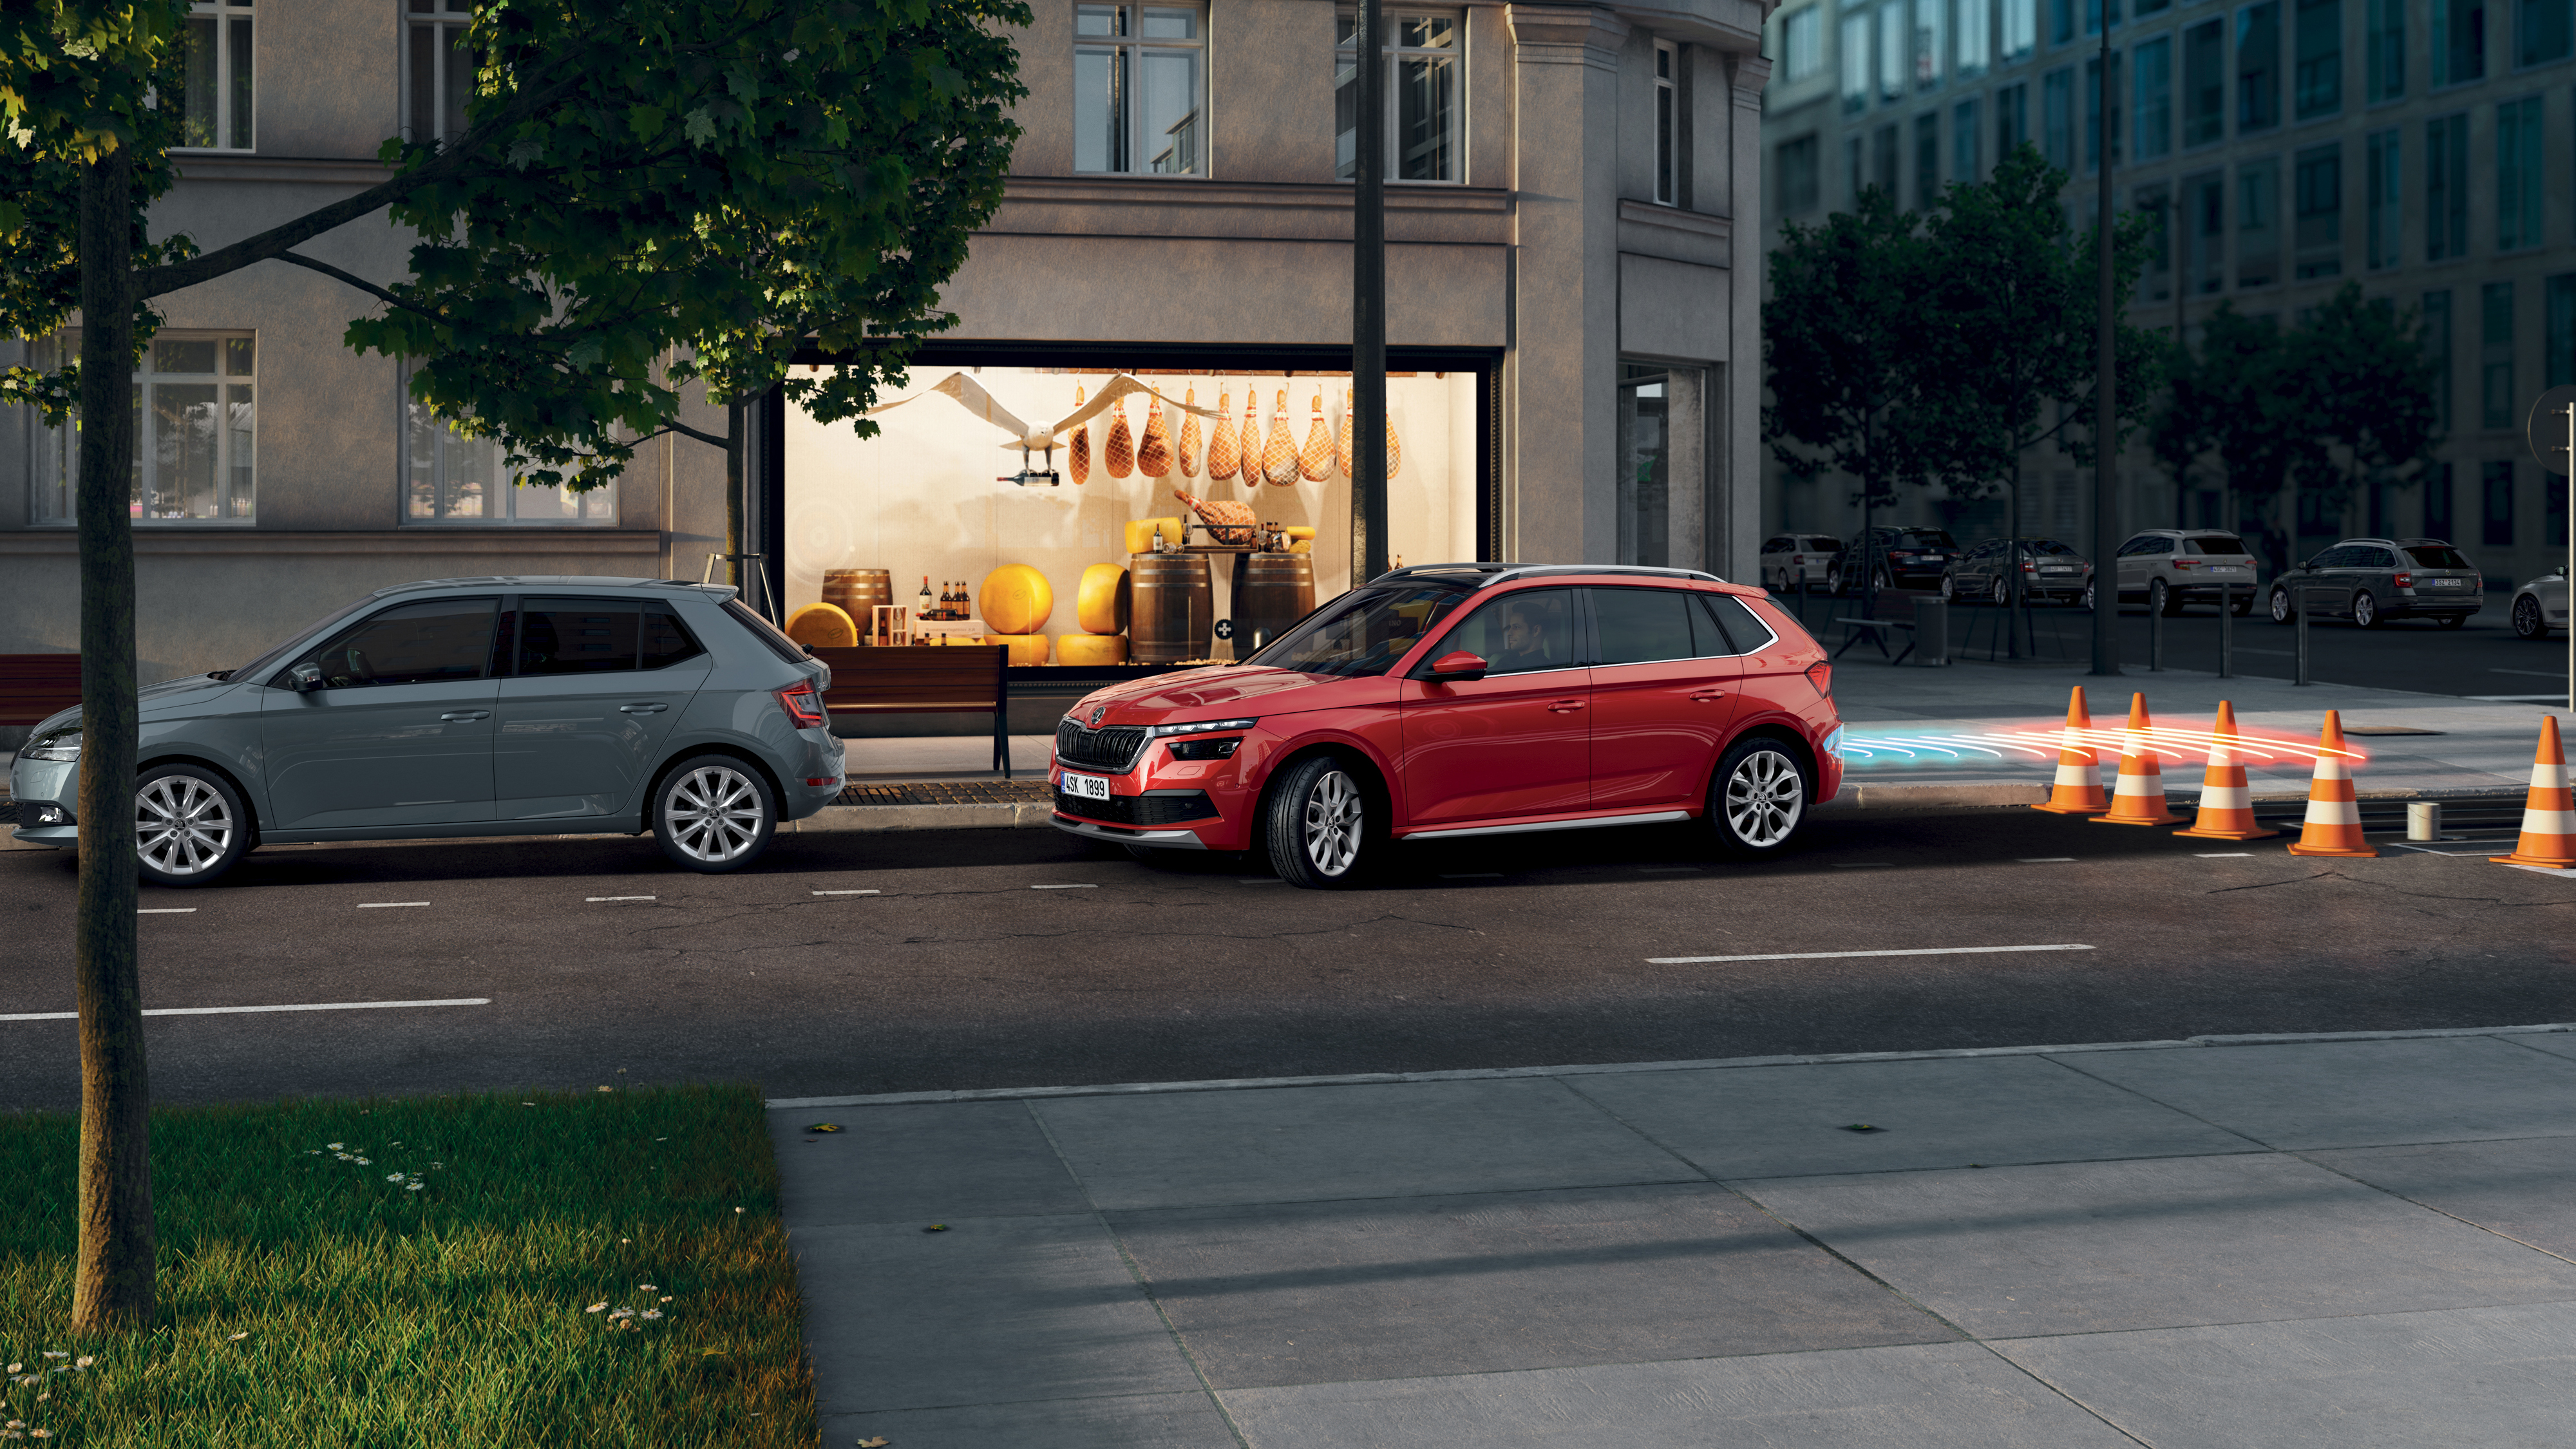 SKODA assistants actively support, warn and protect - Image 1